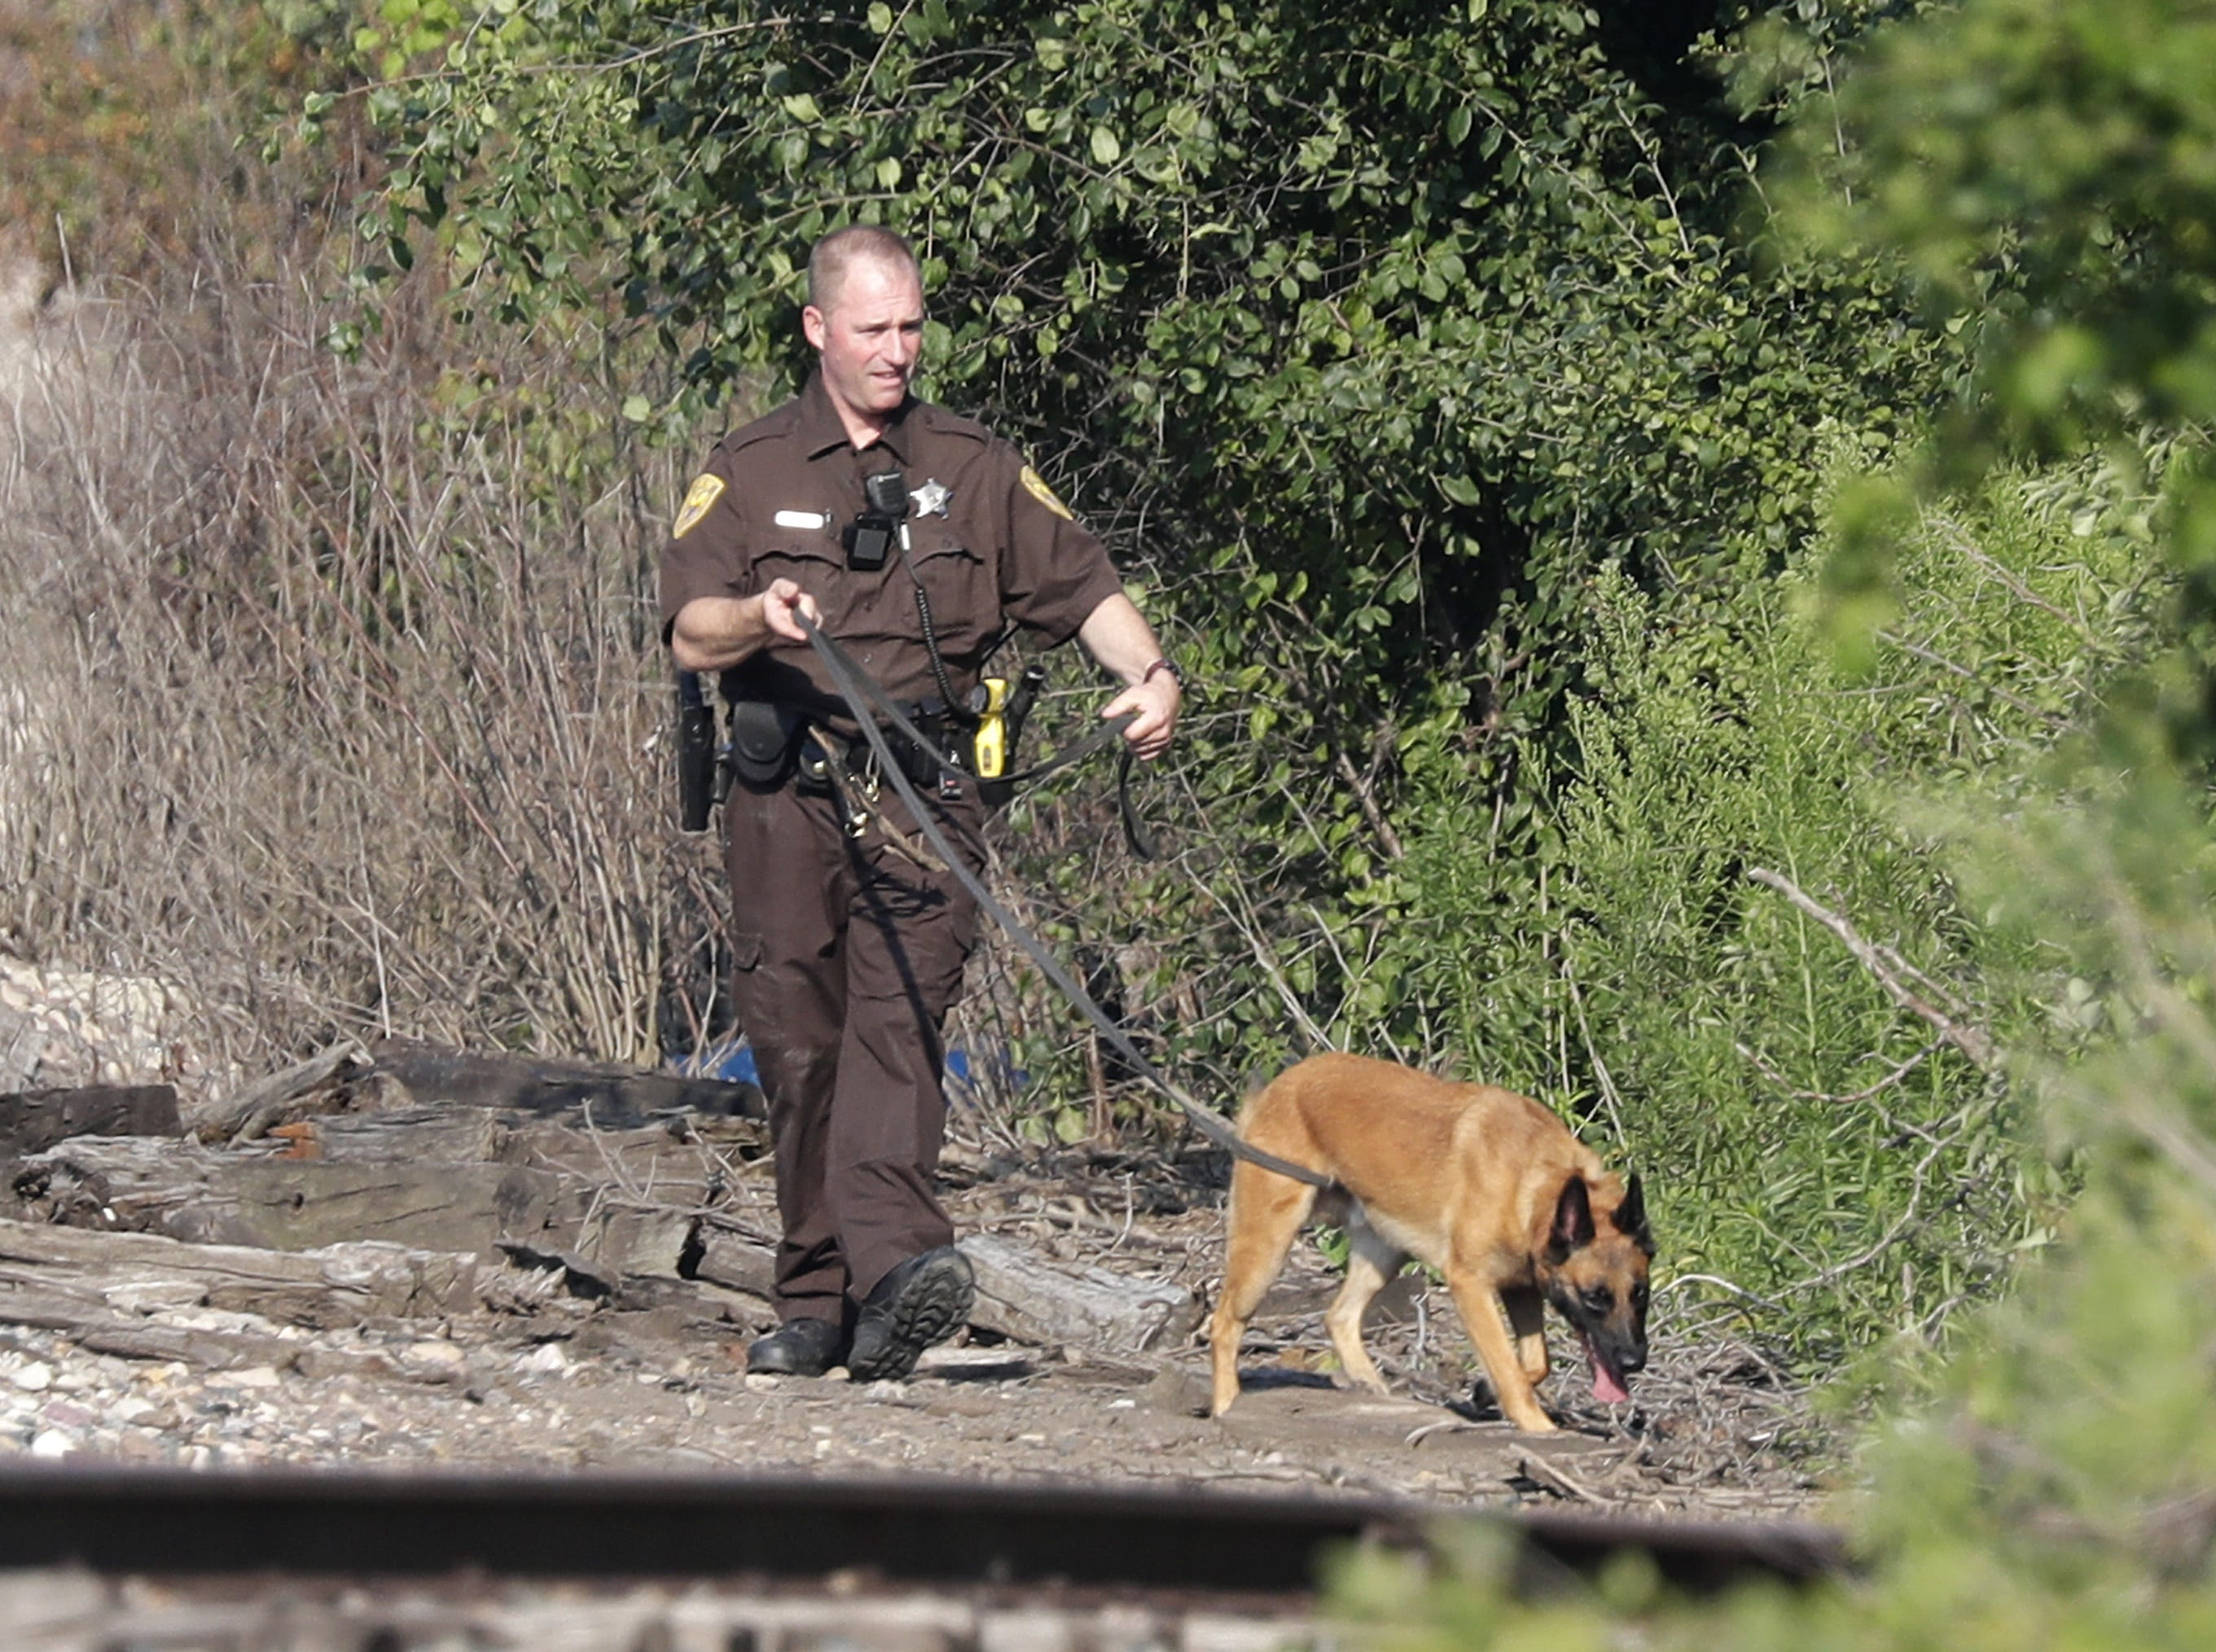 Appleton police officers and the Outagamie County Sheriff's Department K9 unit search, following a traffic stop, for an individual on and around the railroad tracks between Kensington Dr. and Marcella St. Monday, August 6, 2018, in Appleton, Wis.  Wm. Glasheen/USA TODAY  NETWORKWisconsin